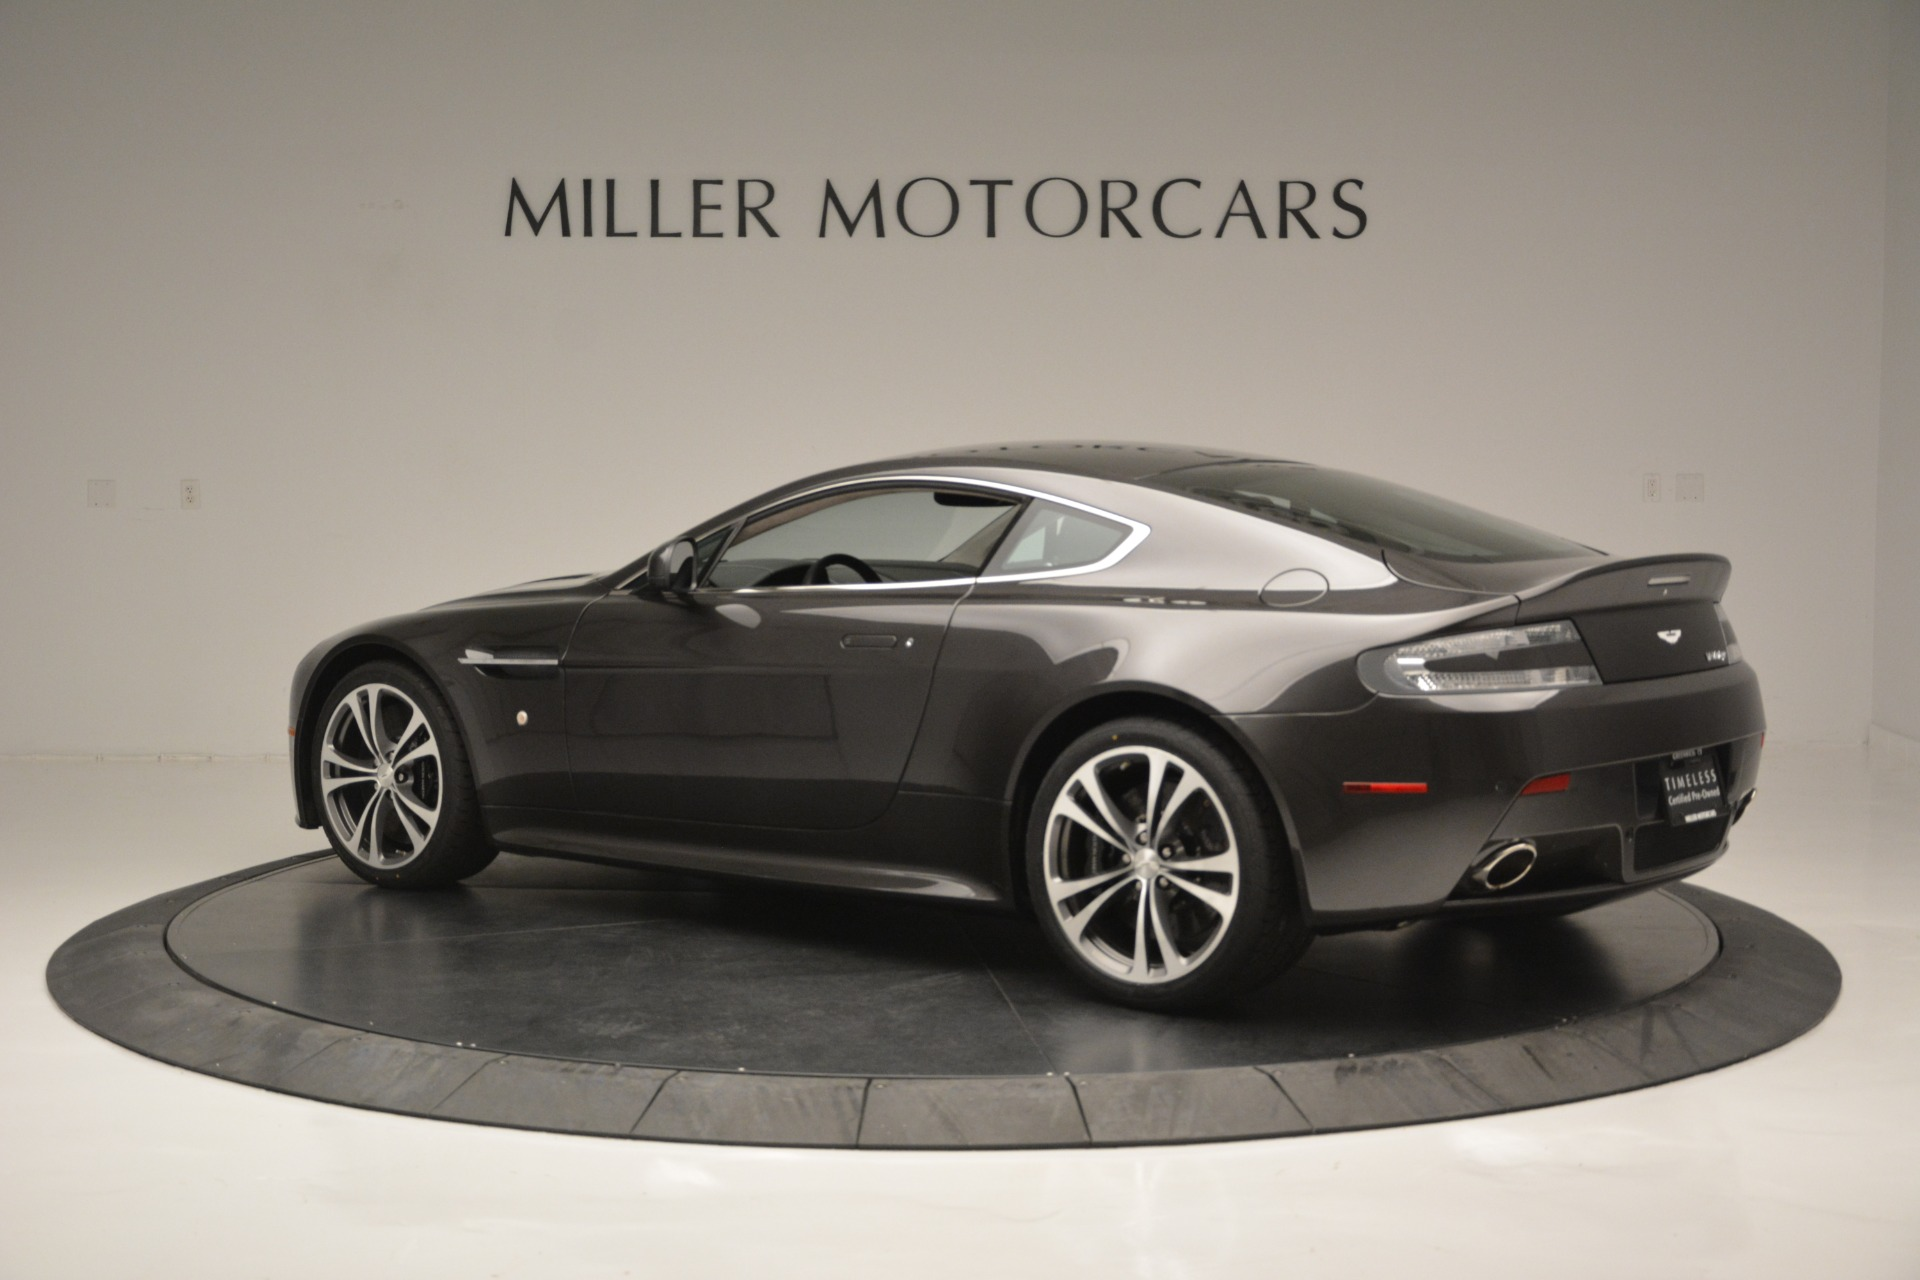 Used 2012 Aston Martin V12 Vantage Coupe For Sale In Greenwich, CT 2544_p4